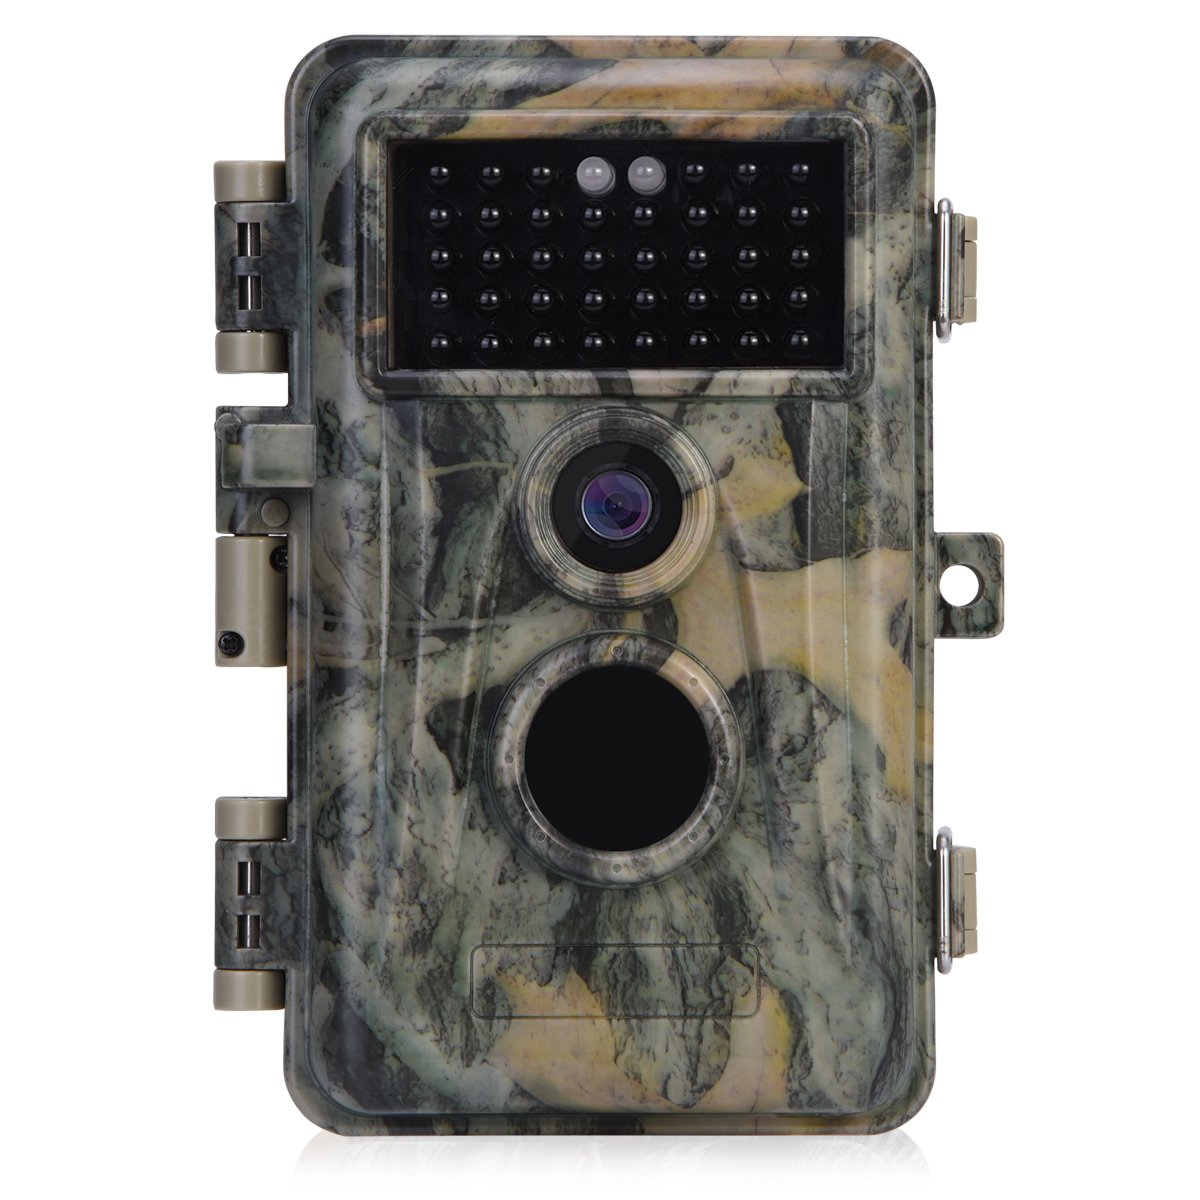 [Upgraded]BlazeVideo 16MP 1080P Game Trail Wildlife Deer Hunting Camera No Flash 38pcs Invisible IR LED Waterproof IP66 65ft Night Vision with Motion Activated PIR Sensor Animals Surveillance 2.4'' LCD